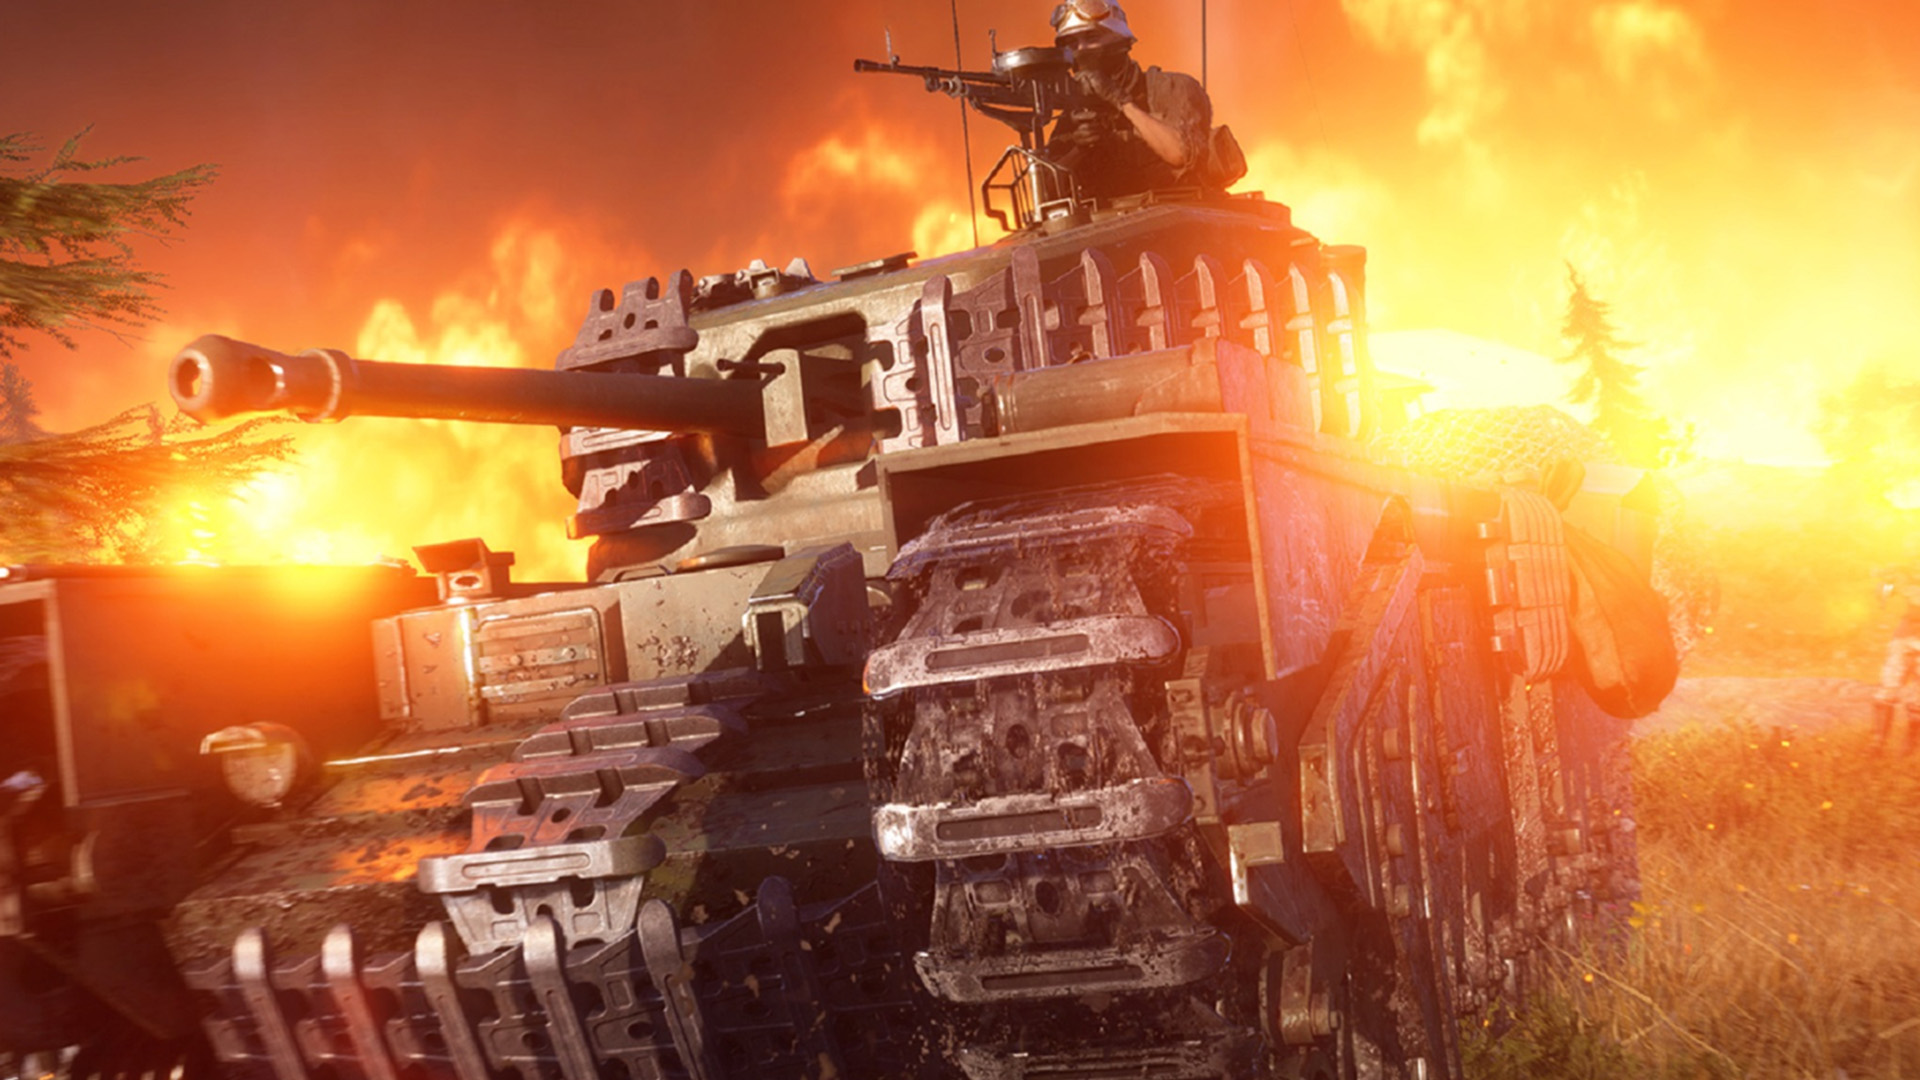 Today on Impulse, we give our first impressions on Battlefield V Firestorm screenshot